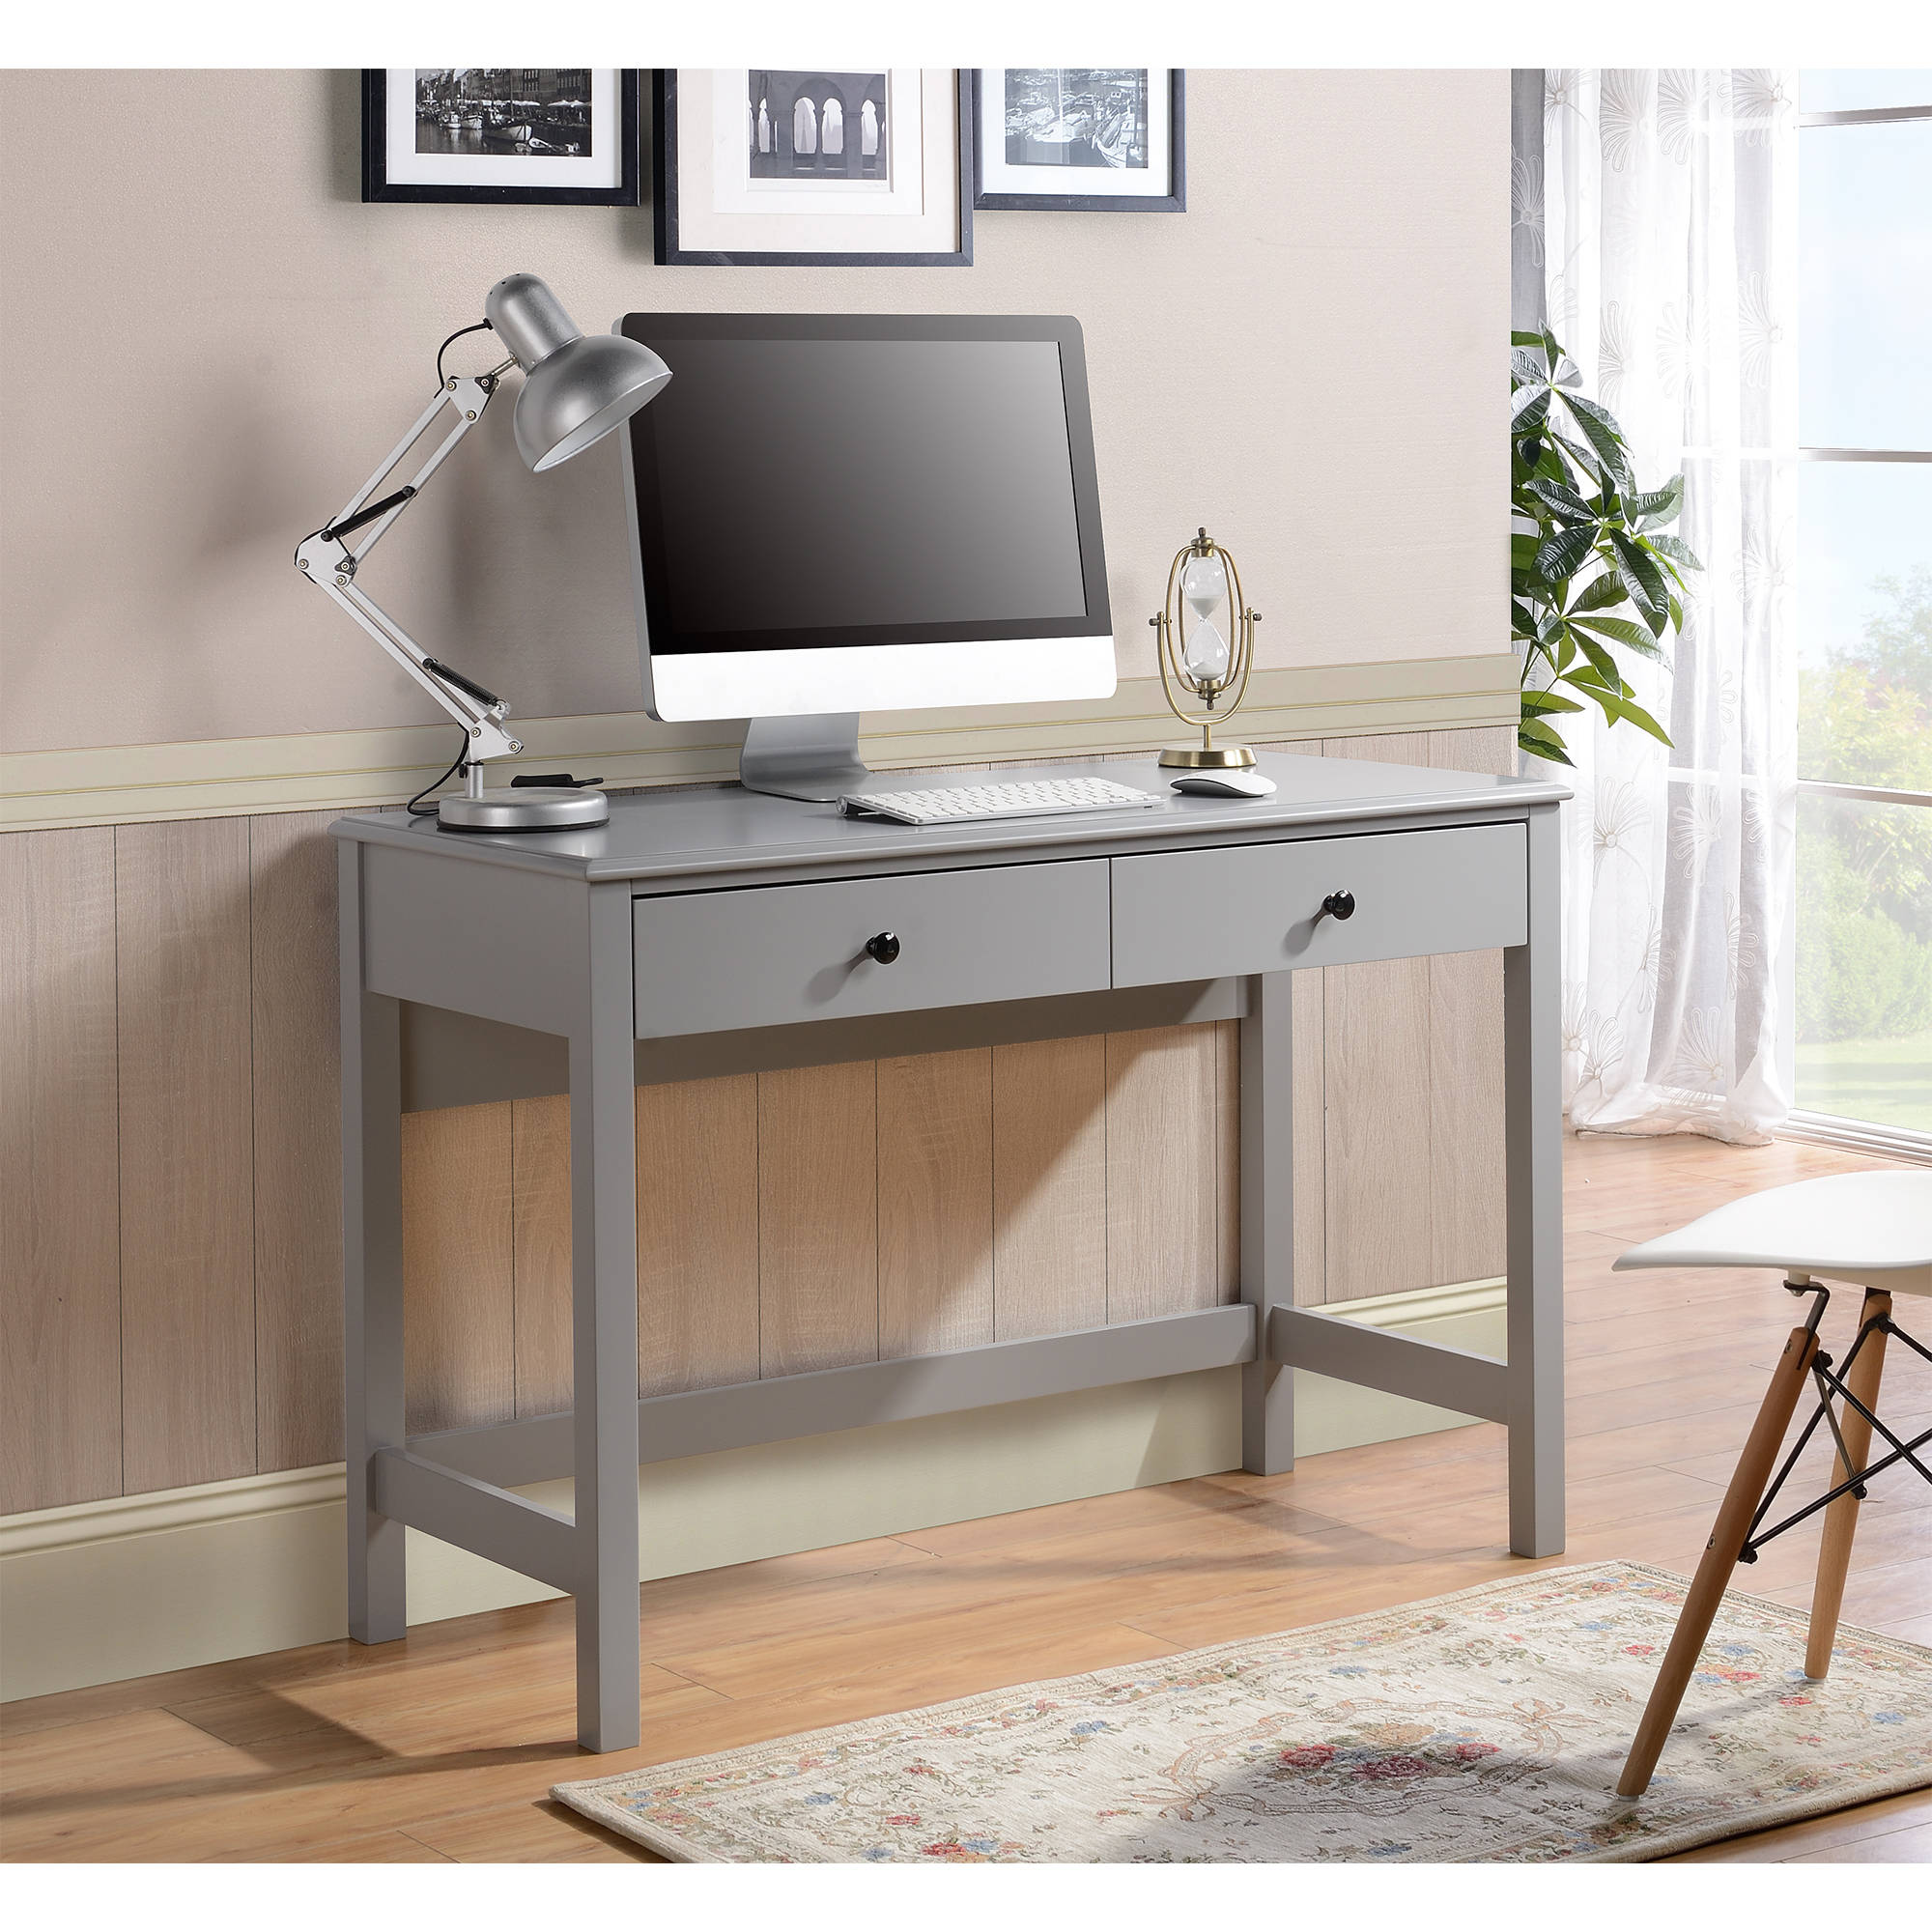 Othello writing desk in Gray Paint Finish